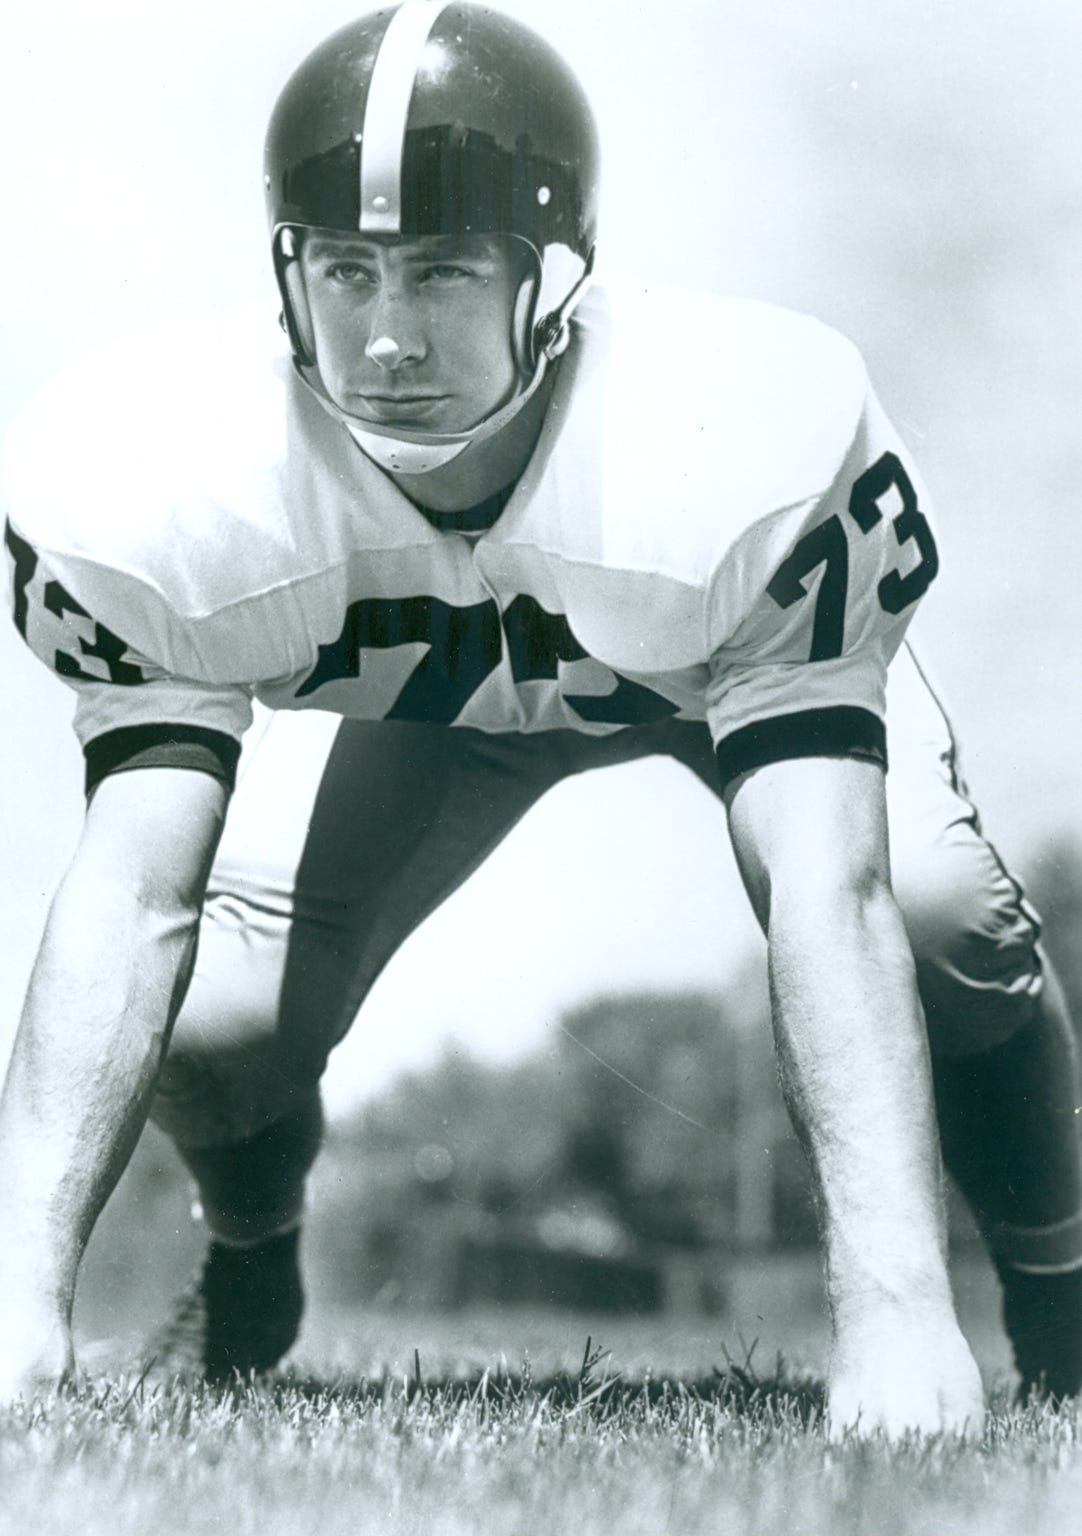 Don Brumm was an All-American defensive end at Purdue in 1962.